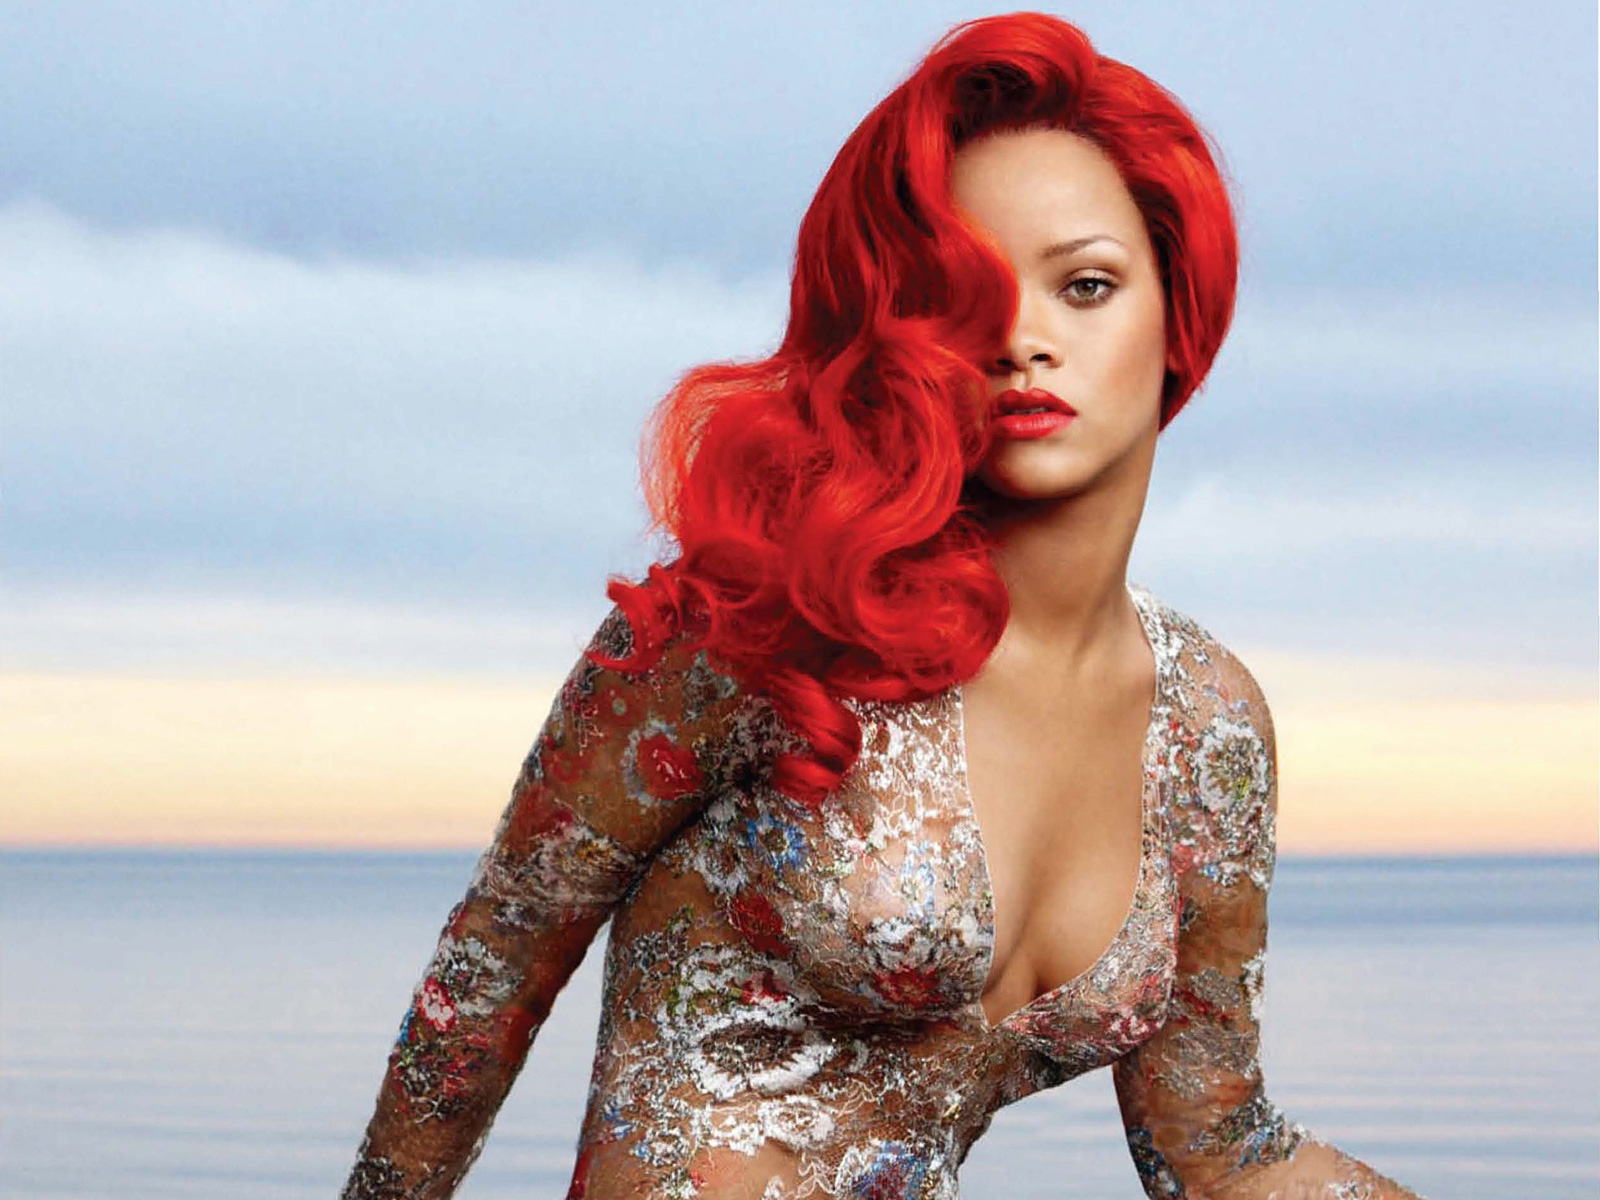 rihanna bright red hairstyle for vogue magazine